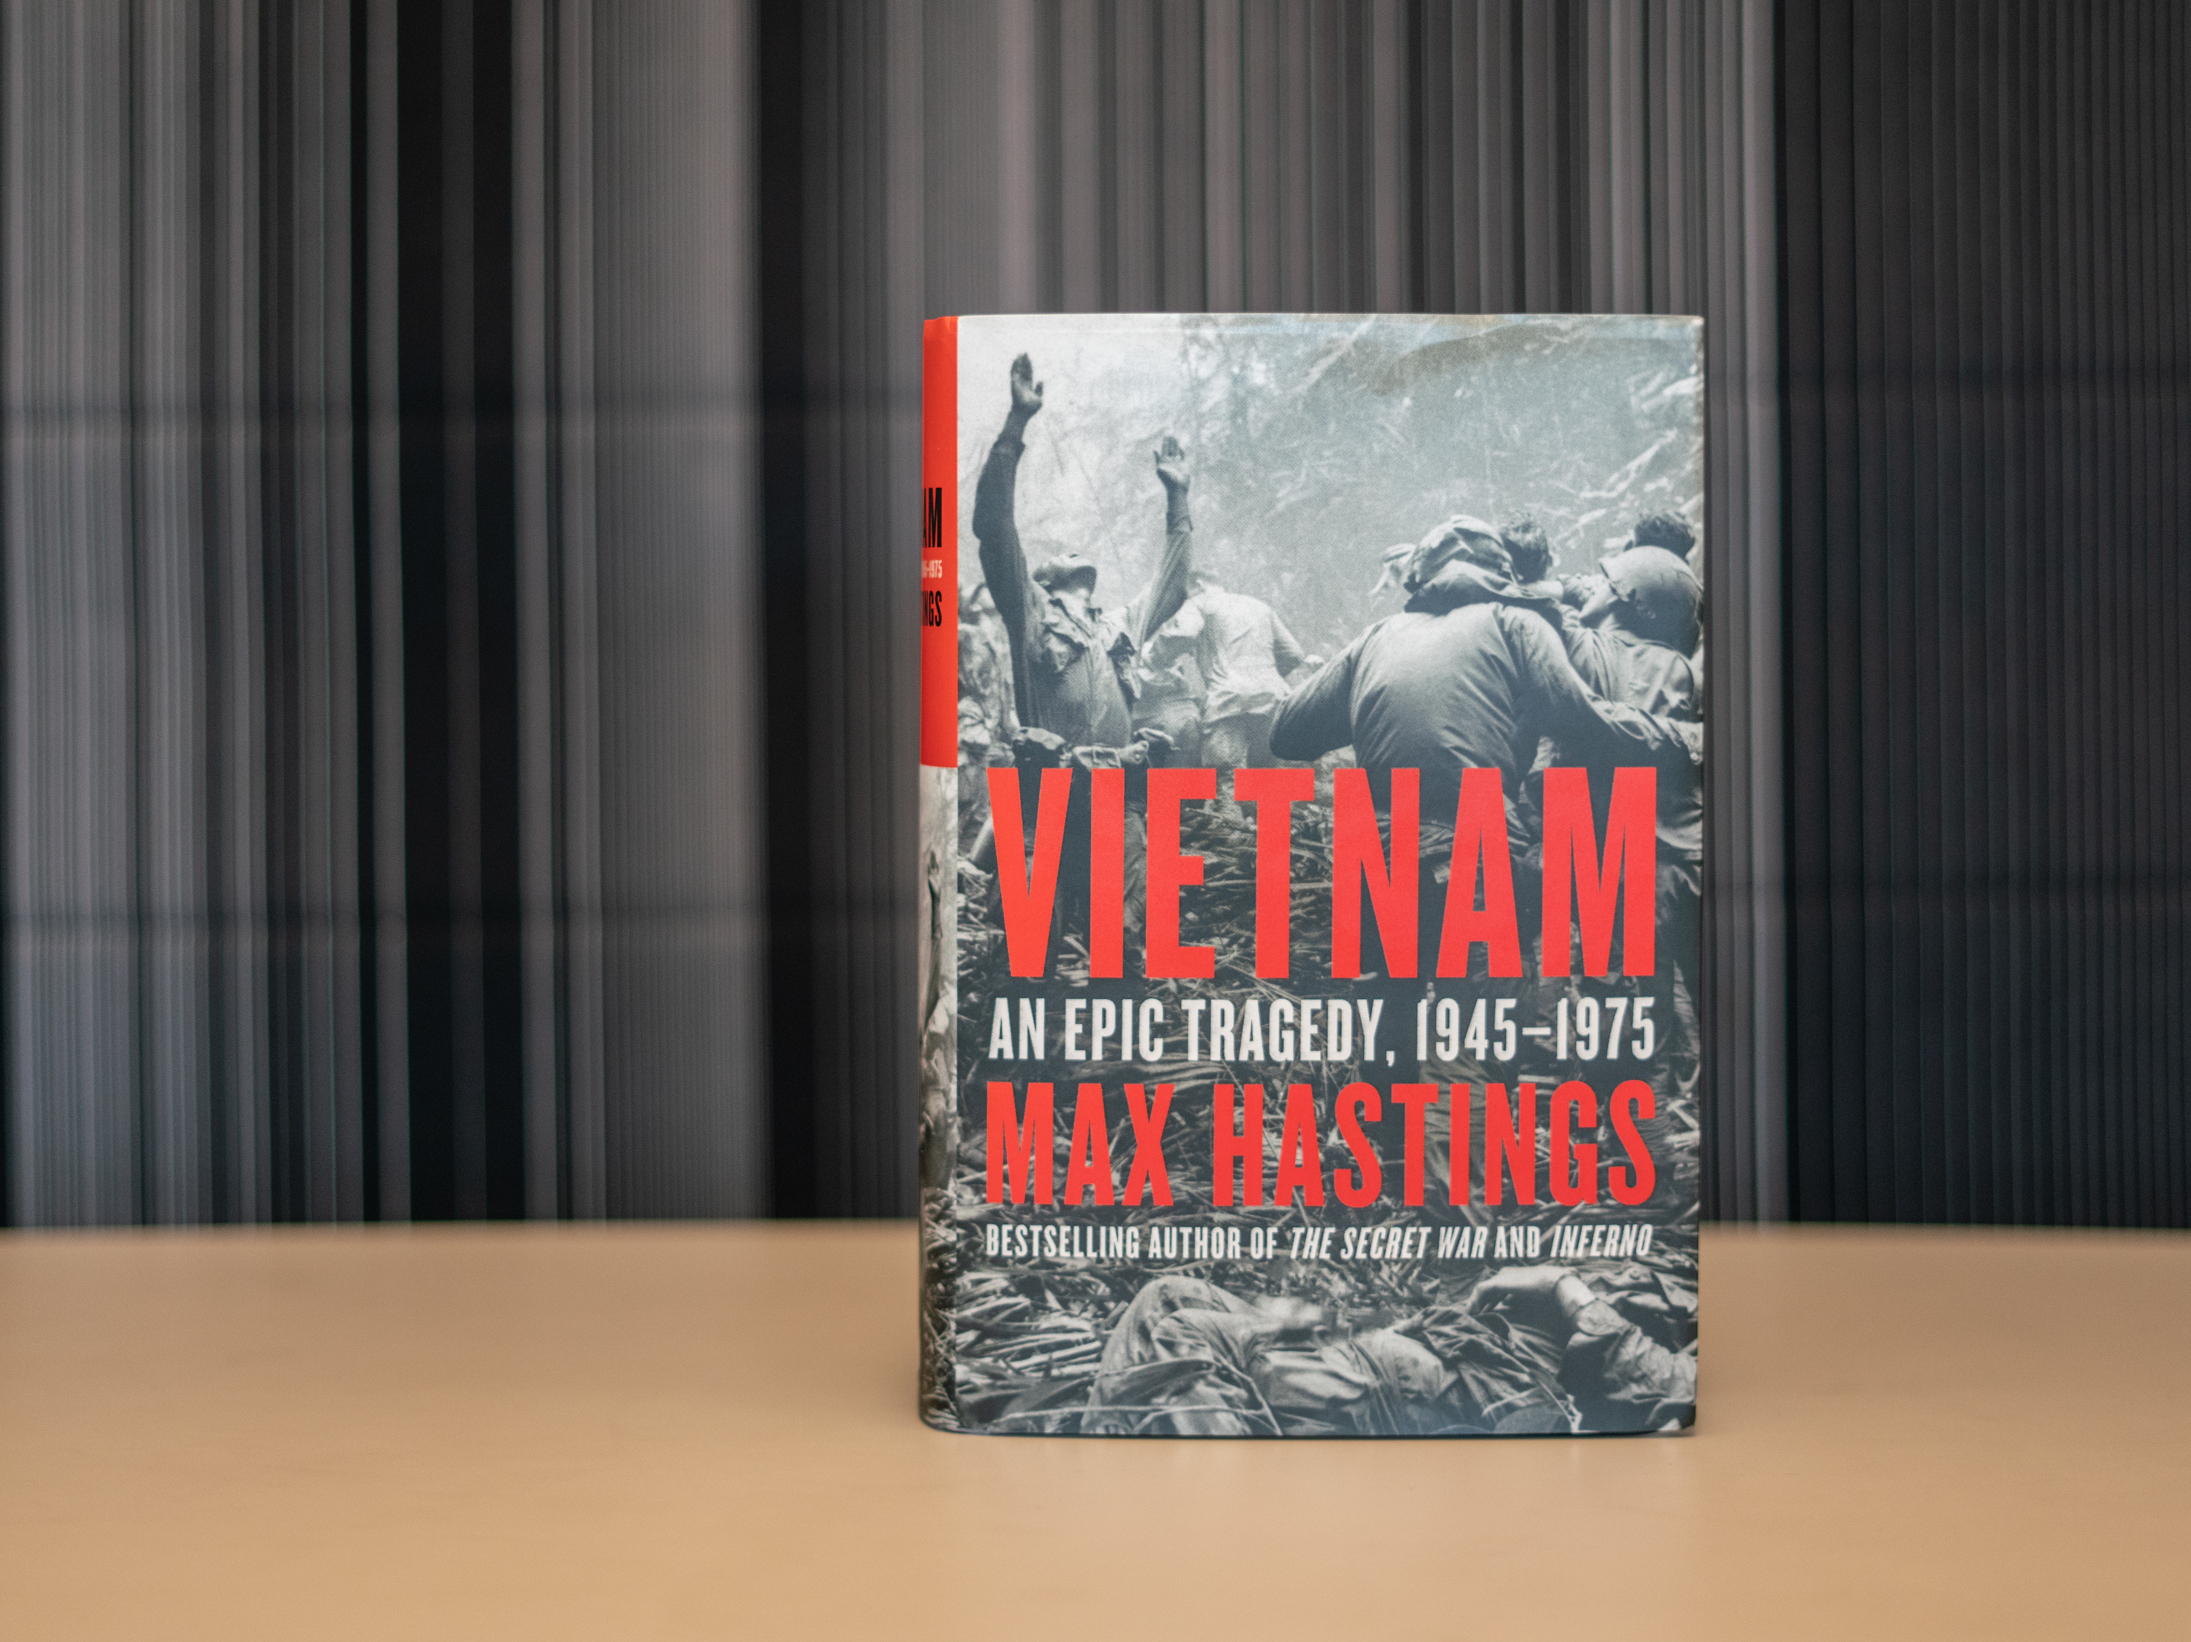 Vietnam' Takes On All Sides With A Critical Gaze : NPR